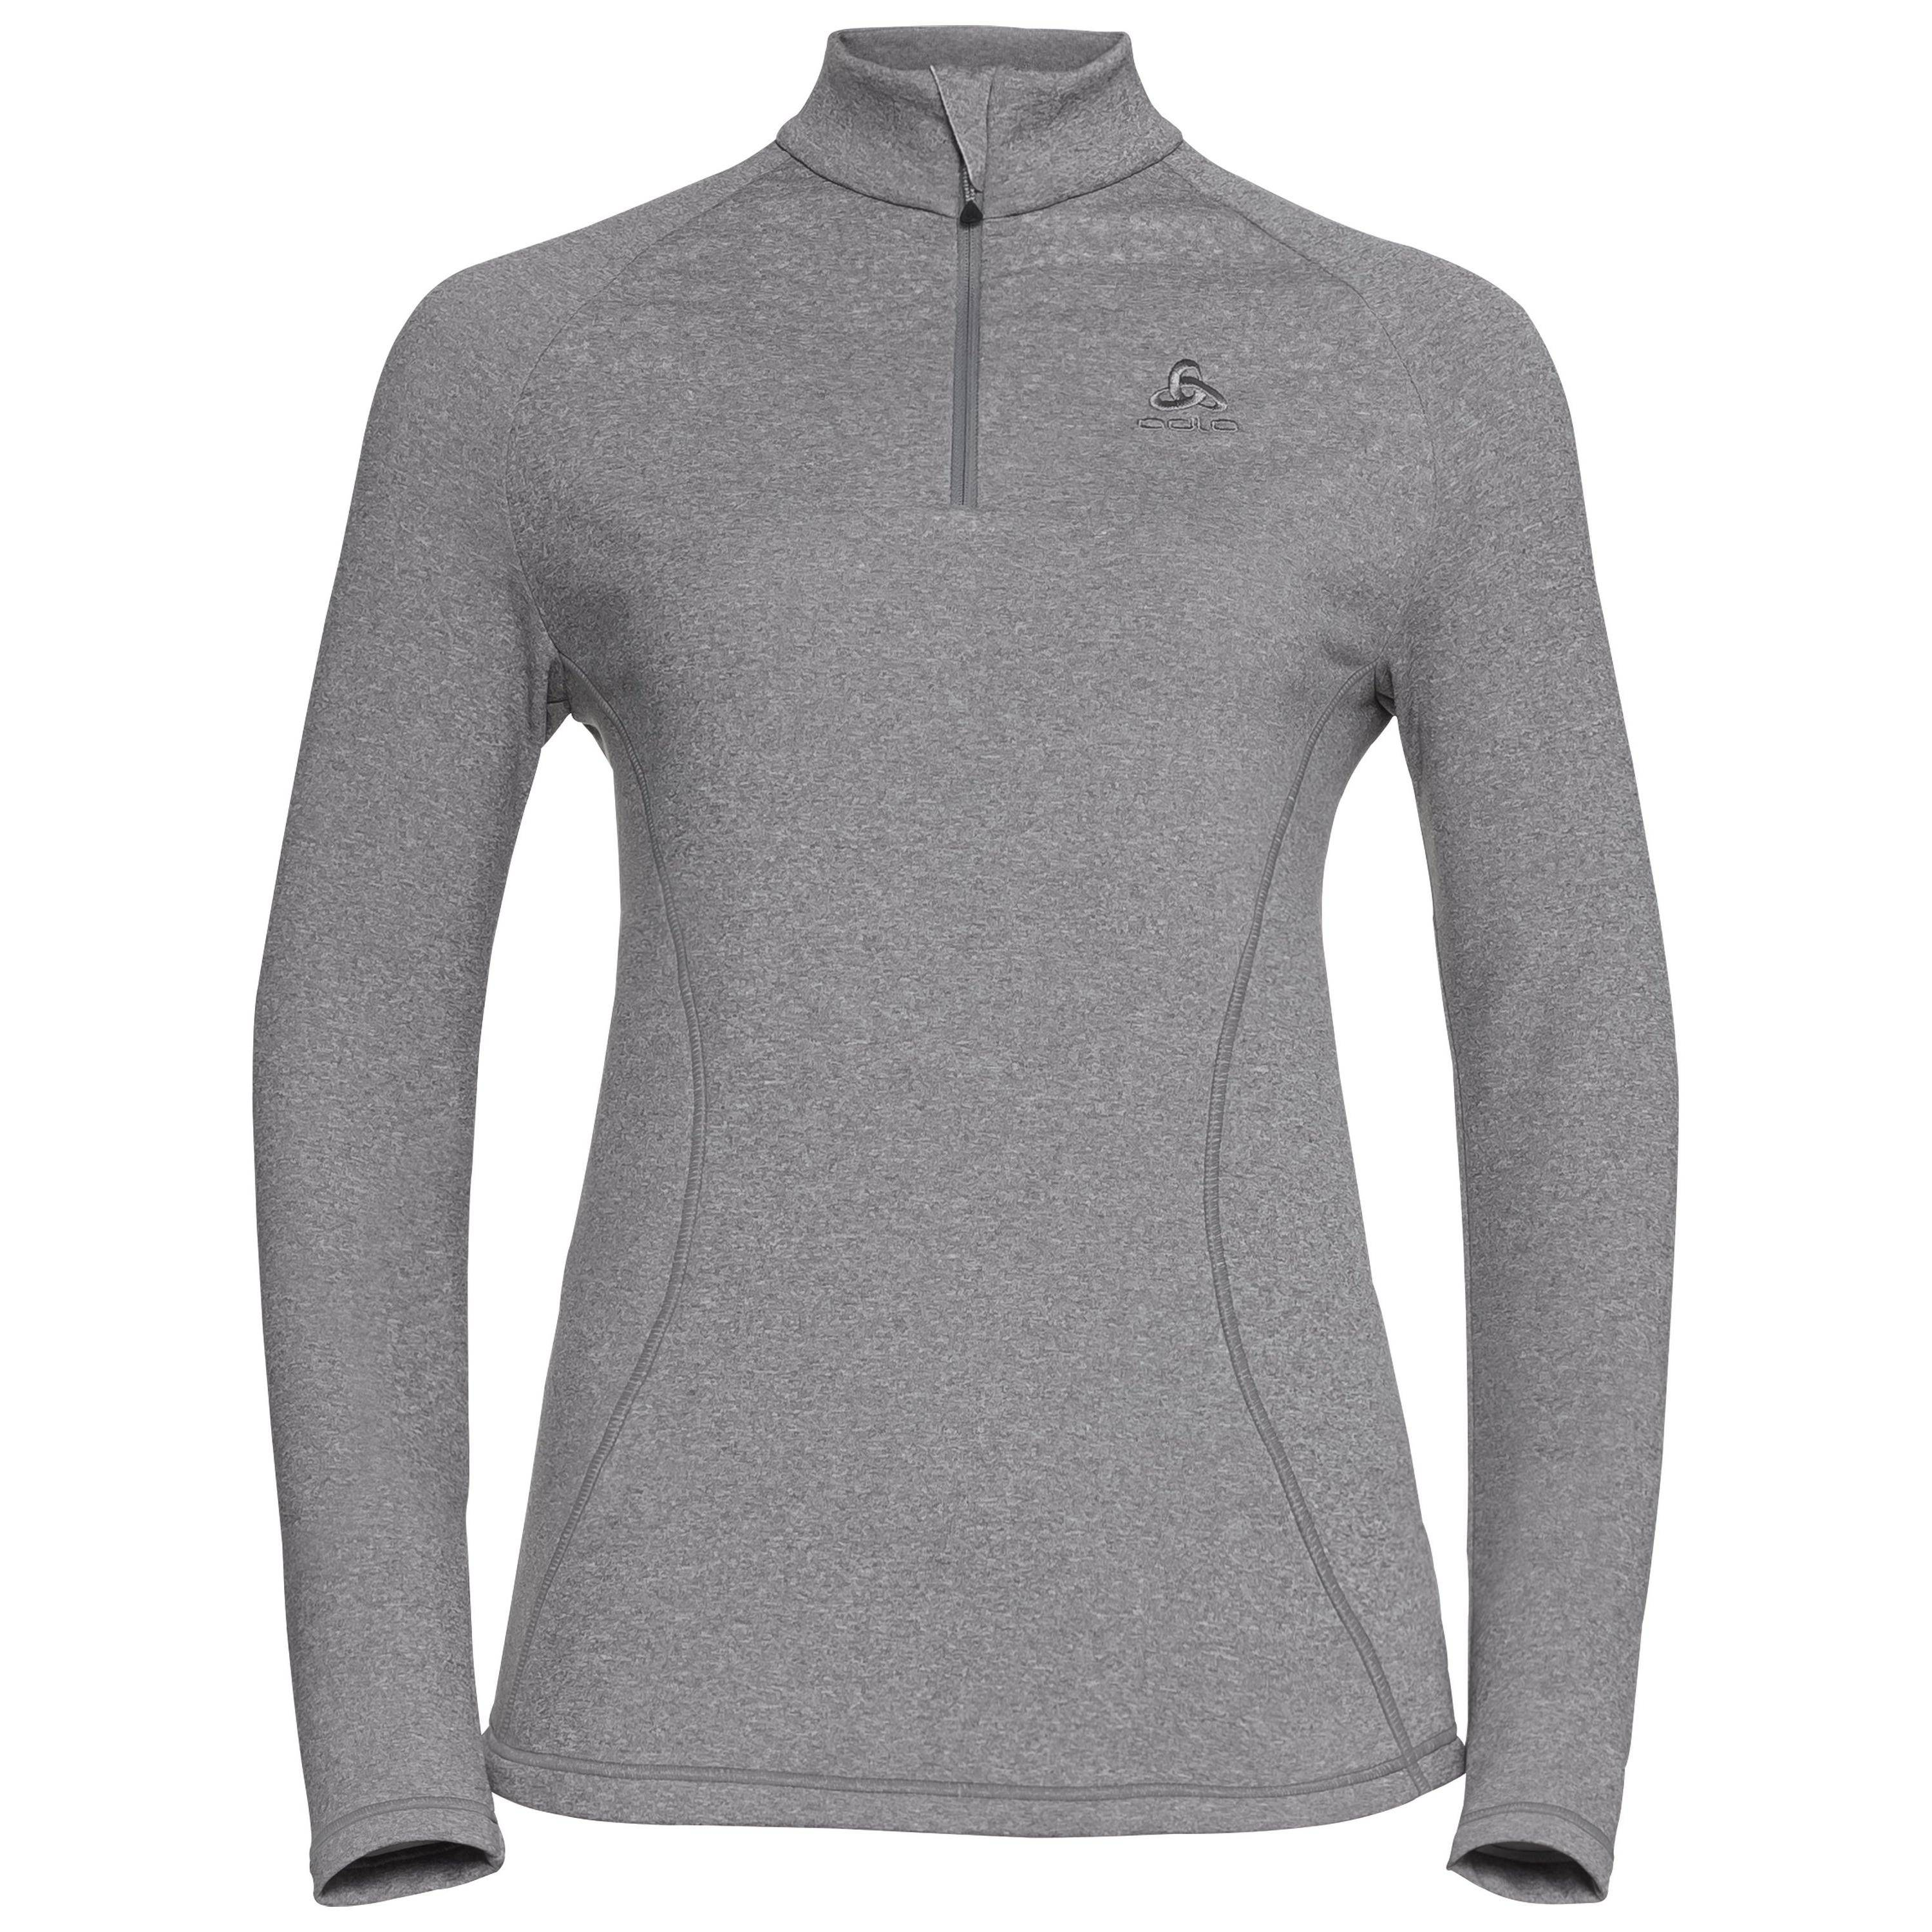 Odlo Pull couche intermédiaire 1/2 zip GLADE grey melange with print FW17 taille: XL